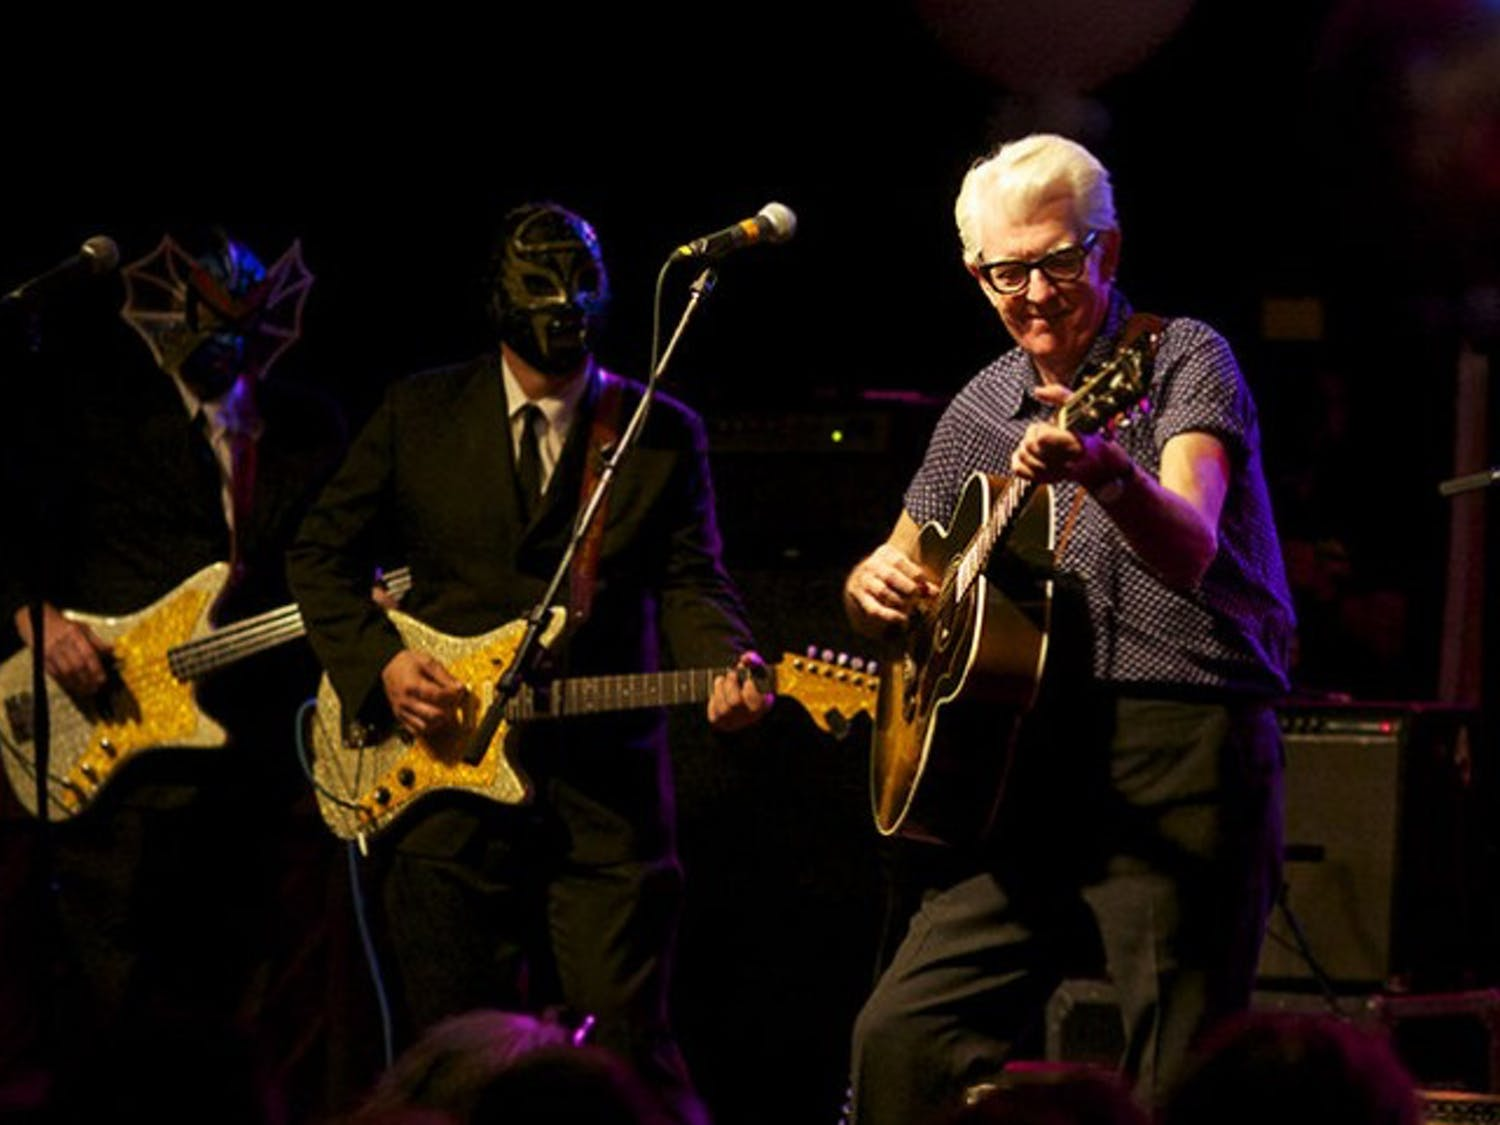 Nick Lowe spreads cheer on new tour